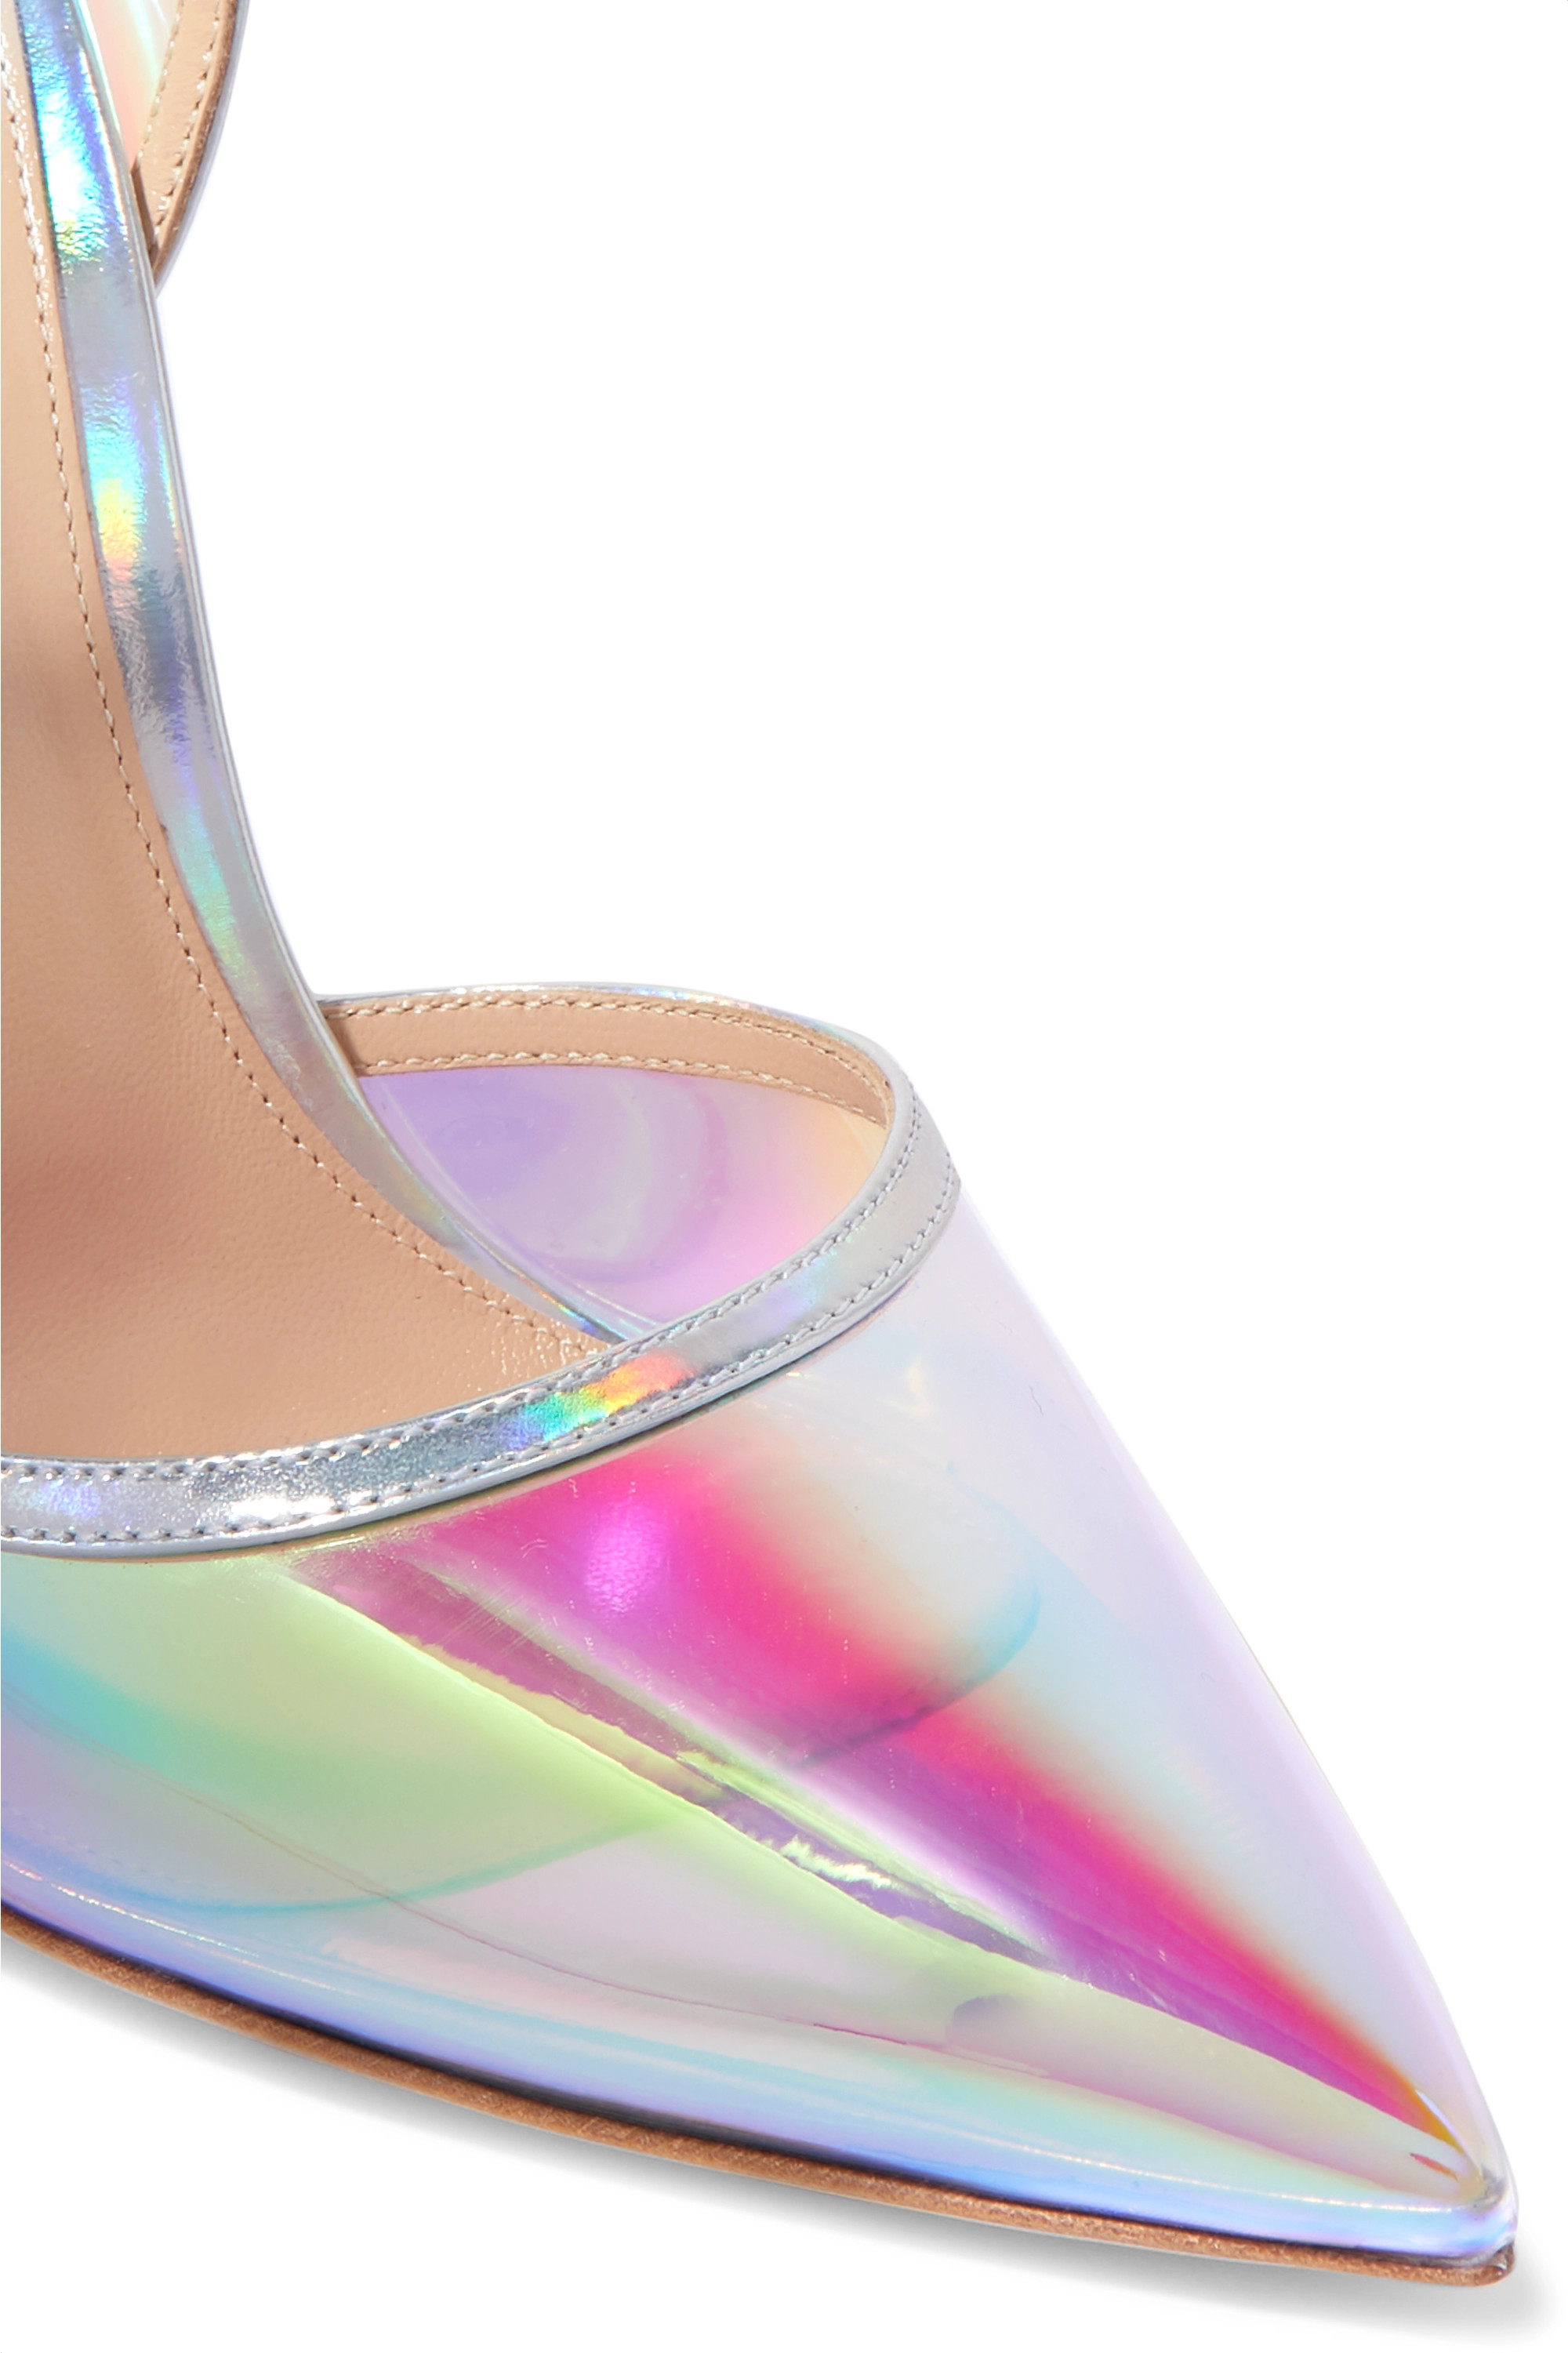 Gianvito Rossi Sabin 105 iridescent Perspex and leather pumps